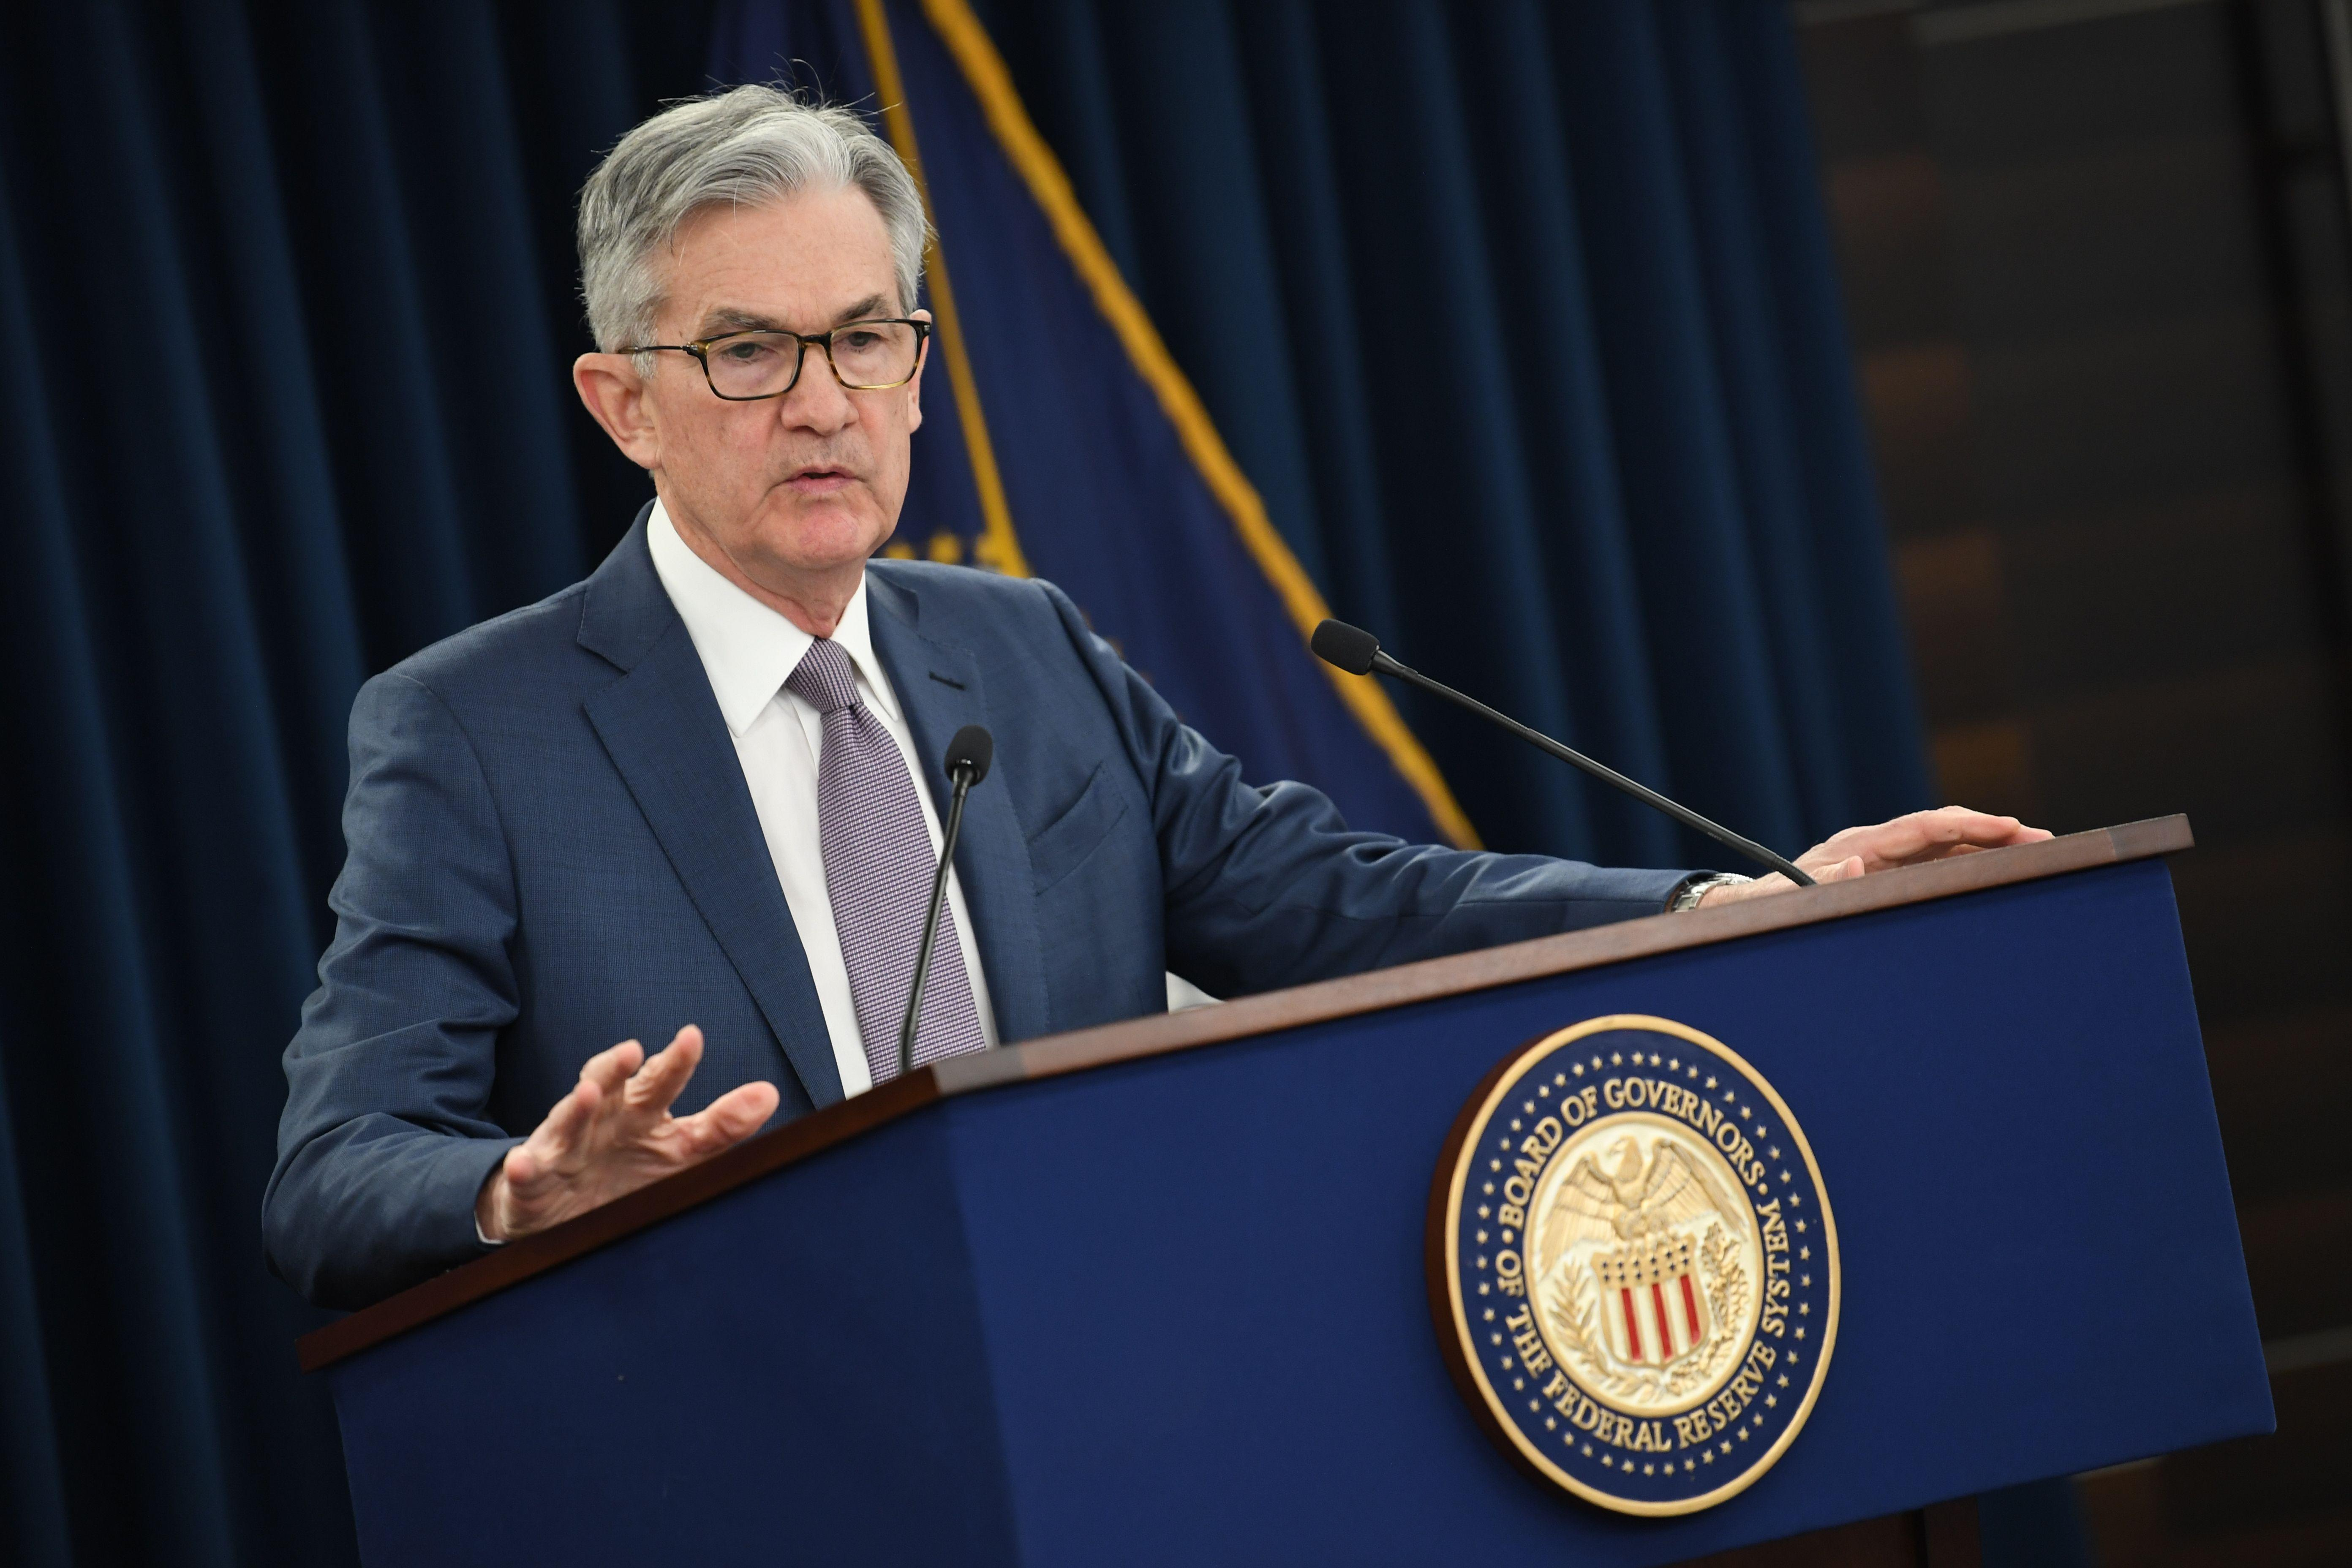 The Federal Reserve contributes to inequality: Former FDIC Chair